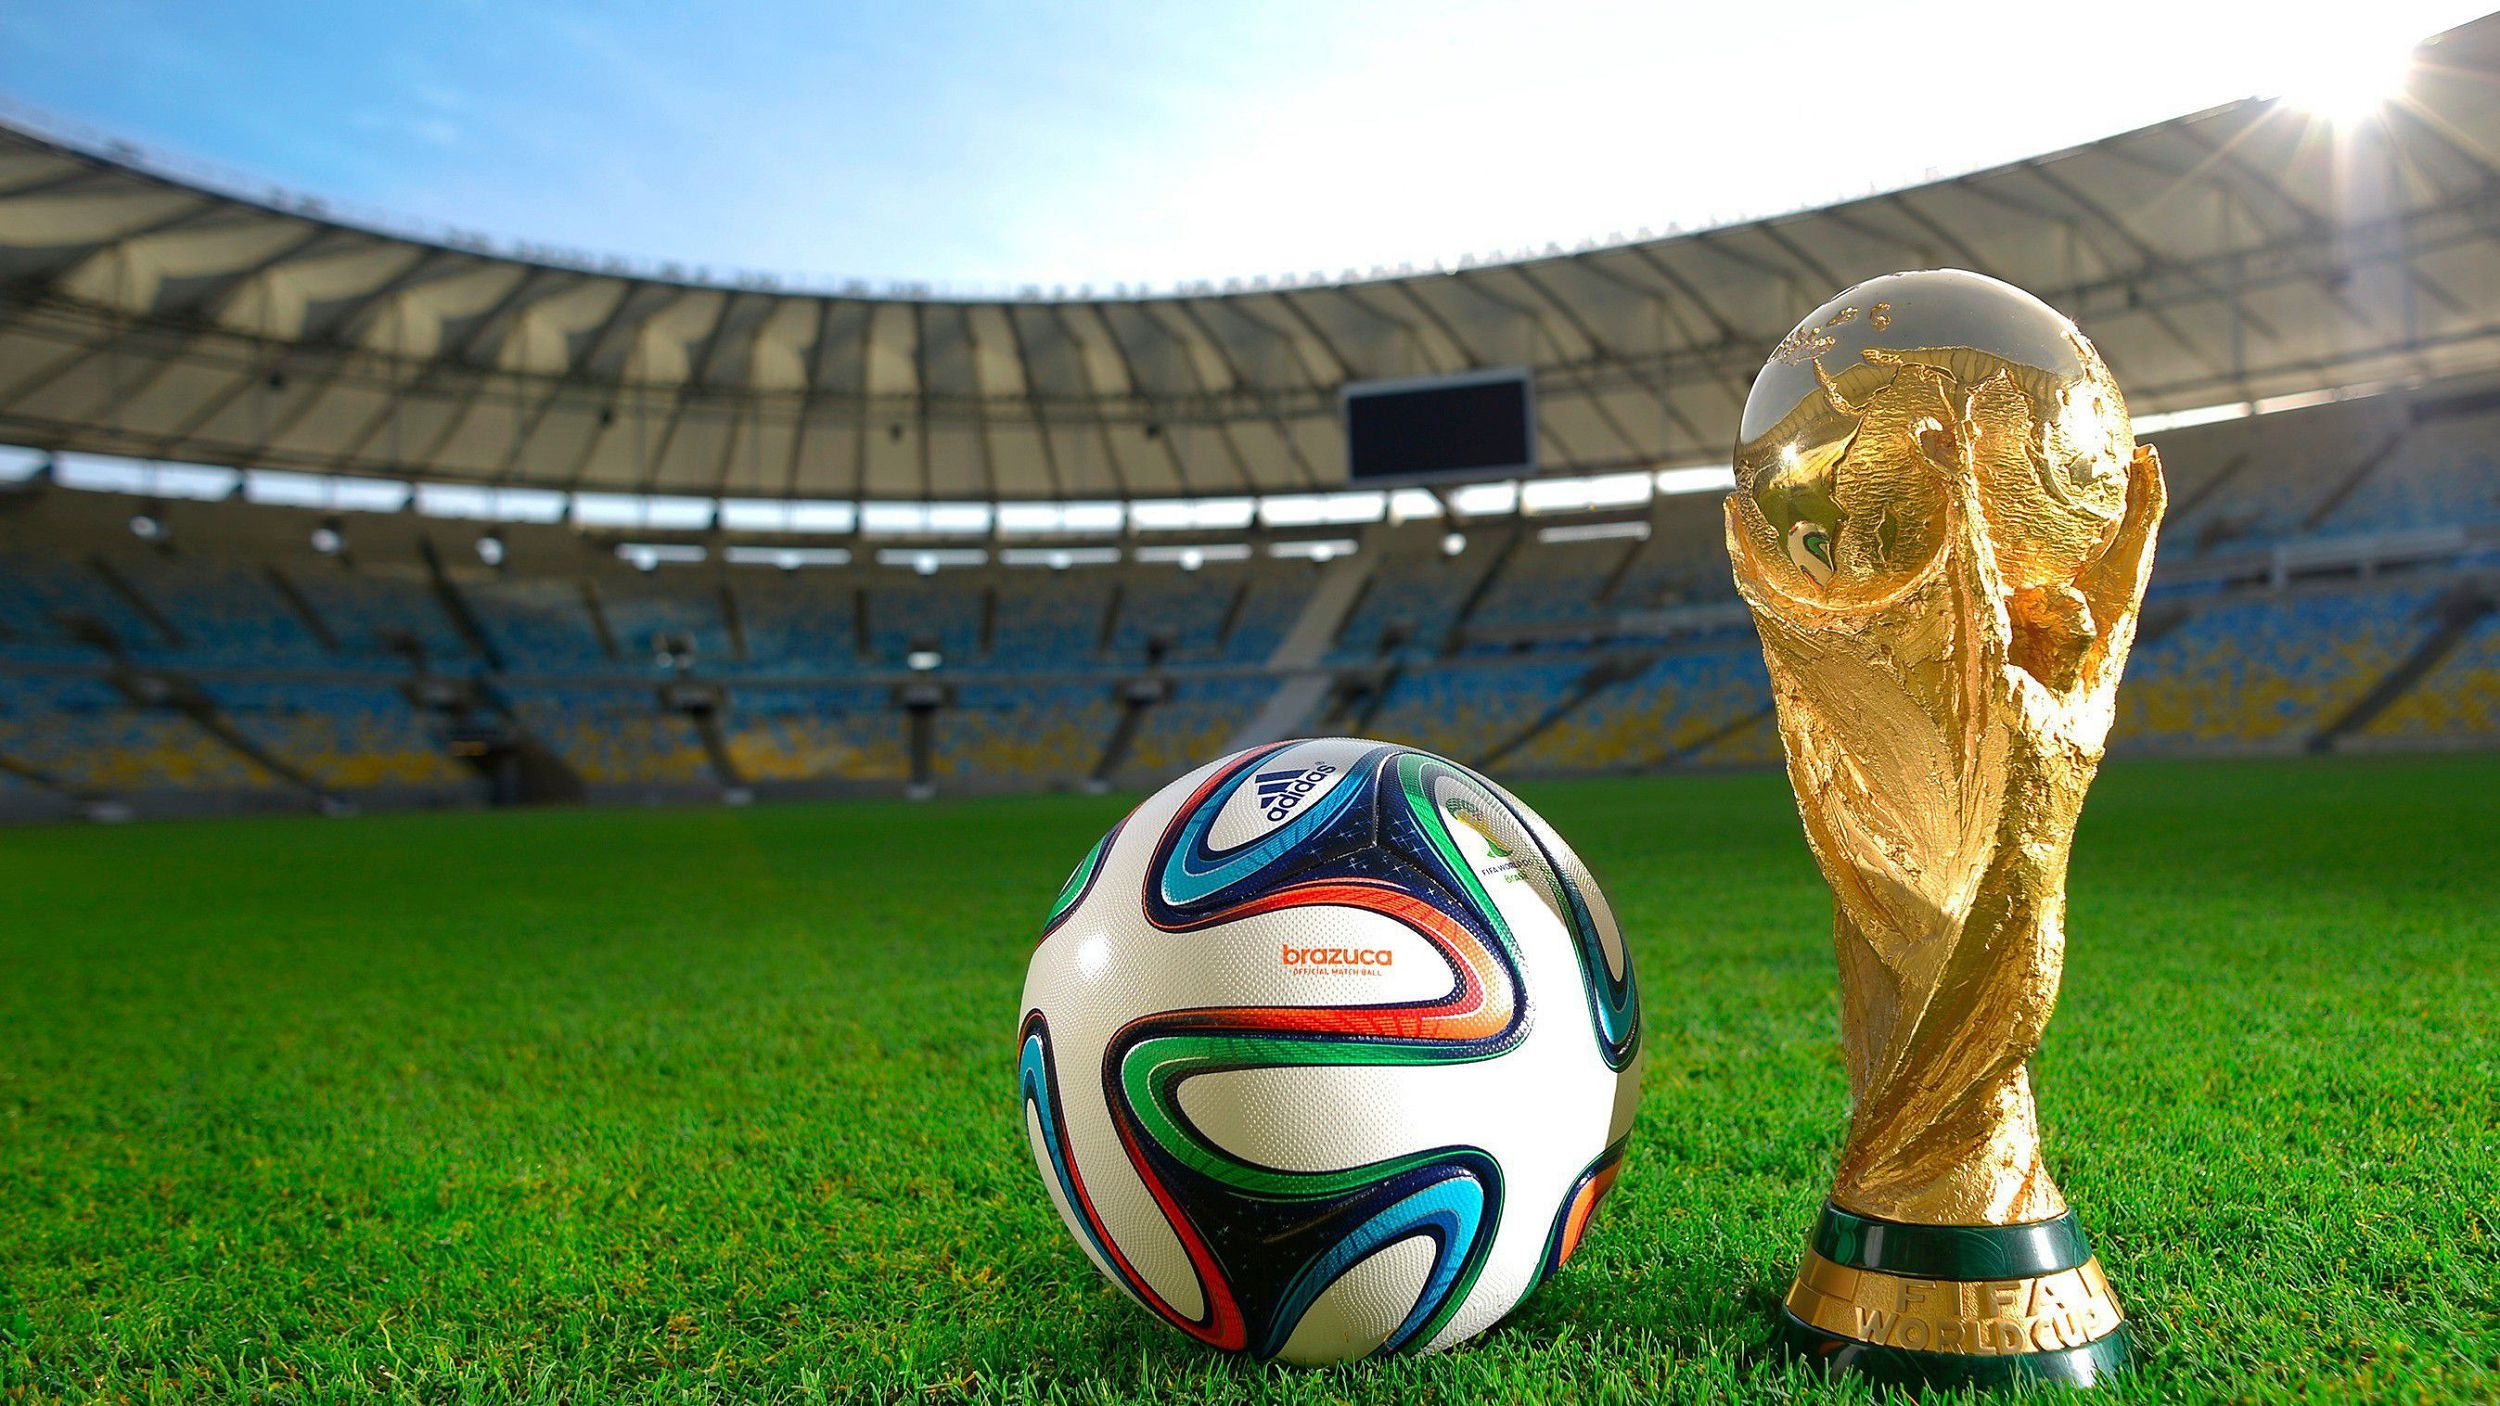 Brazil World Cup 2014 Wallpapers